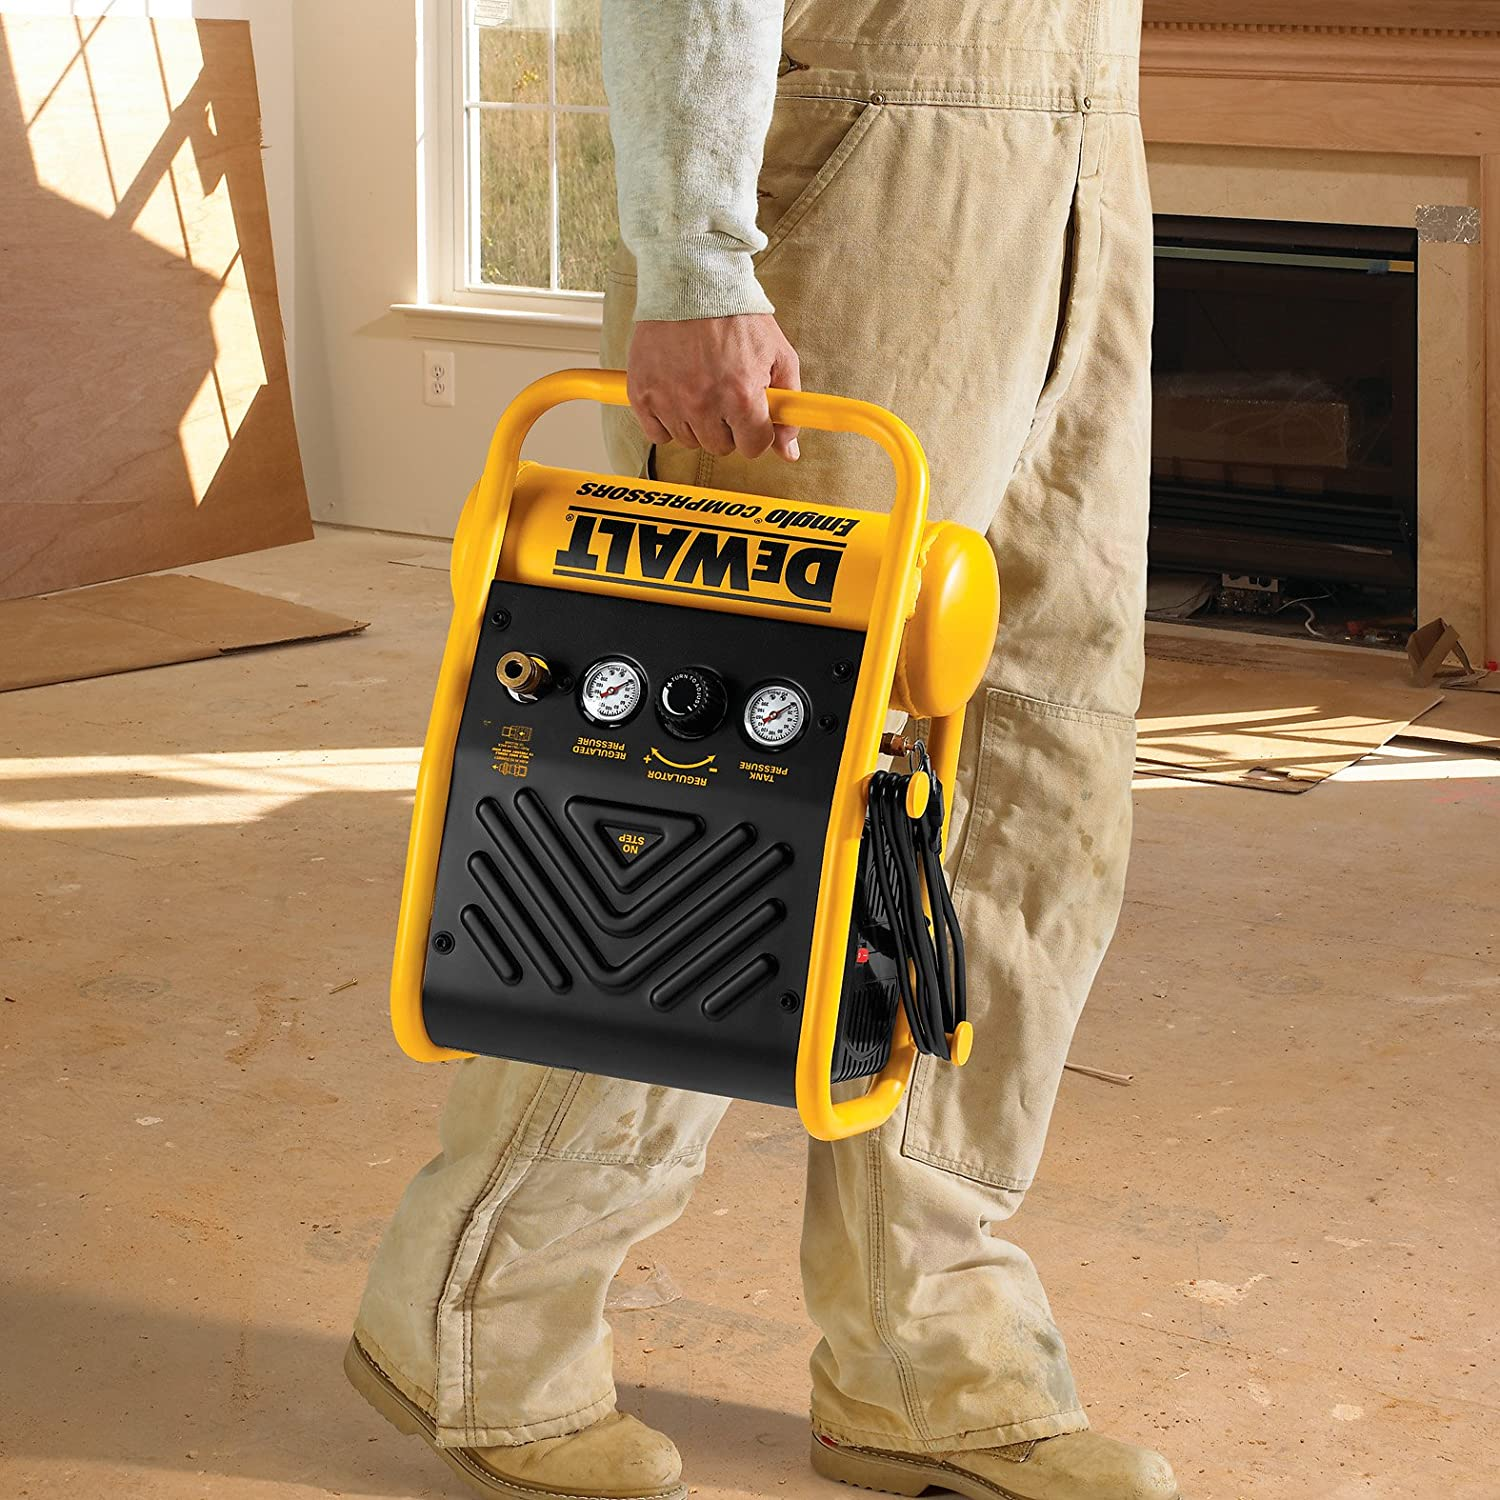 amazon com dewalt d55140 1 gallon 135 psi max trim compressor amazon com dewalt d55140 1 gallon 135 psi max trim compressor home improvement